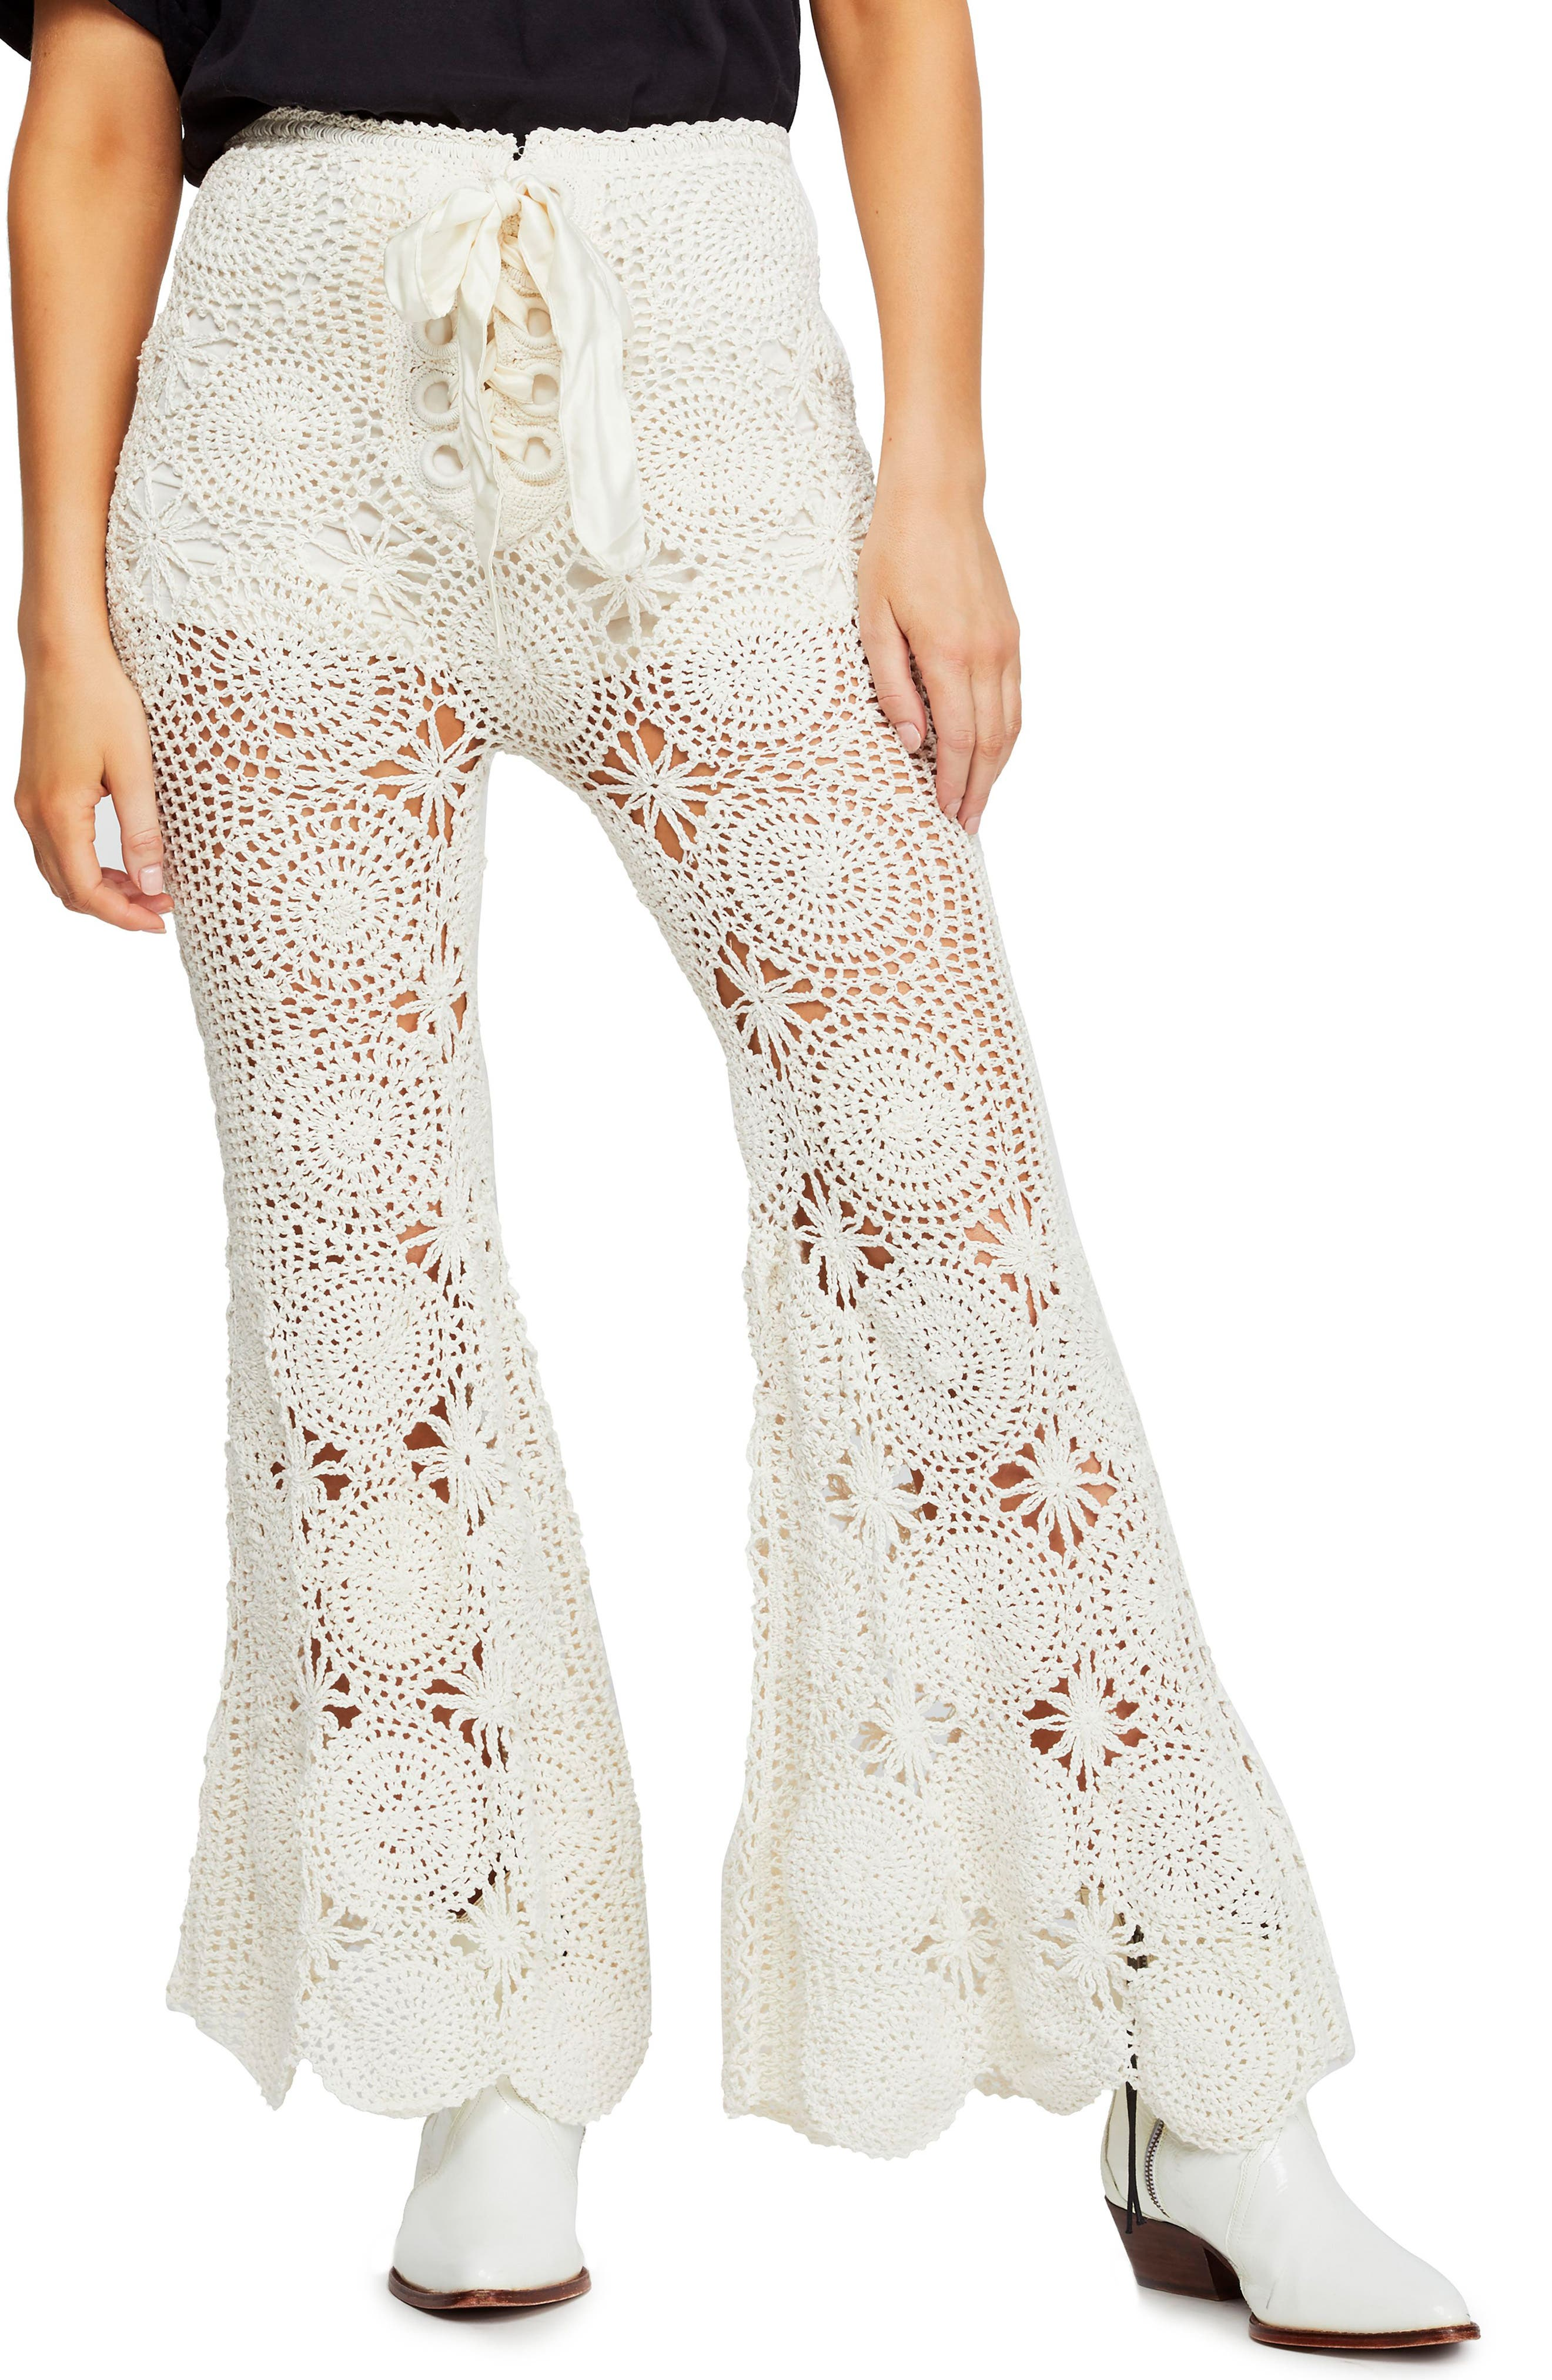 60s – 70s Pants, Jeans, Hippie, Bell Bottoms, Jumpsuits Womens Free People Crochet Lace Flare Pants Size X-Small - Ivory $148.80 AT vintagedancer.com